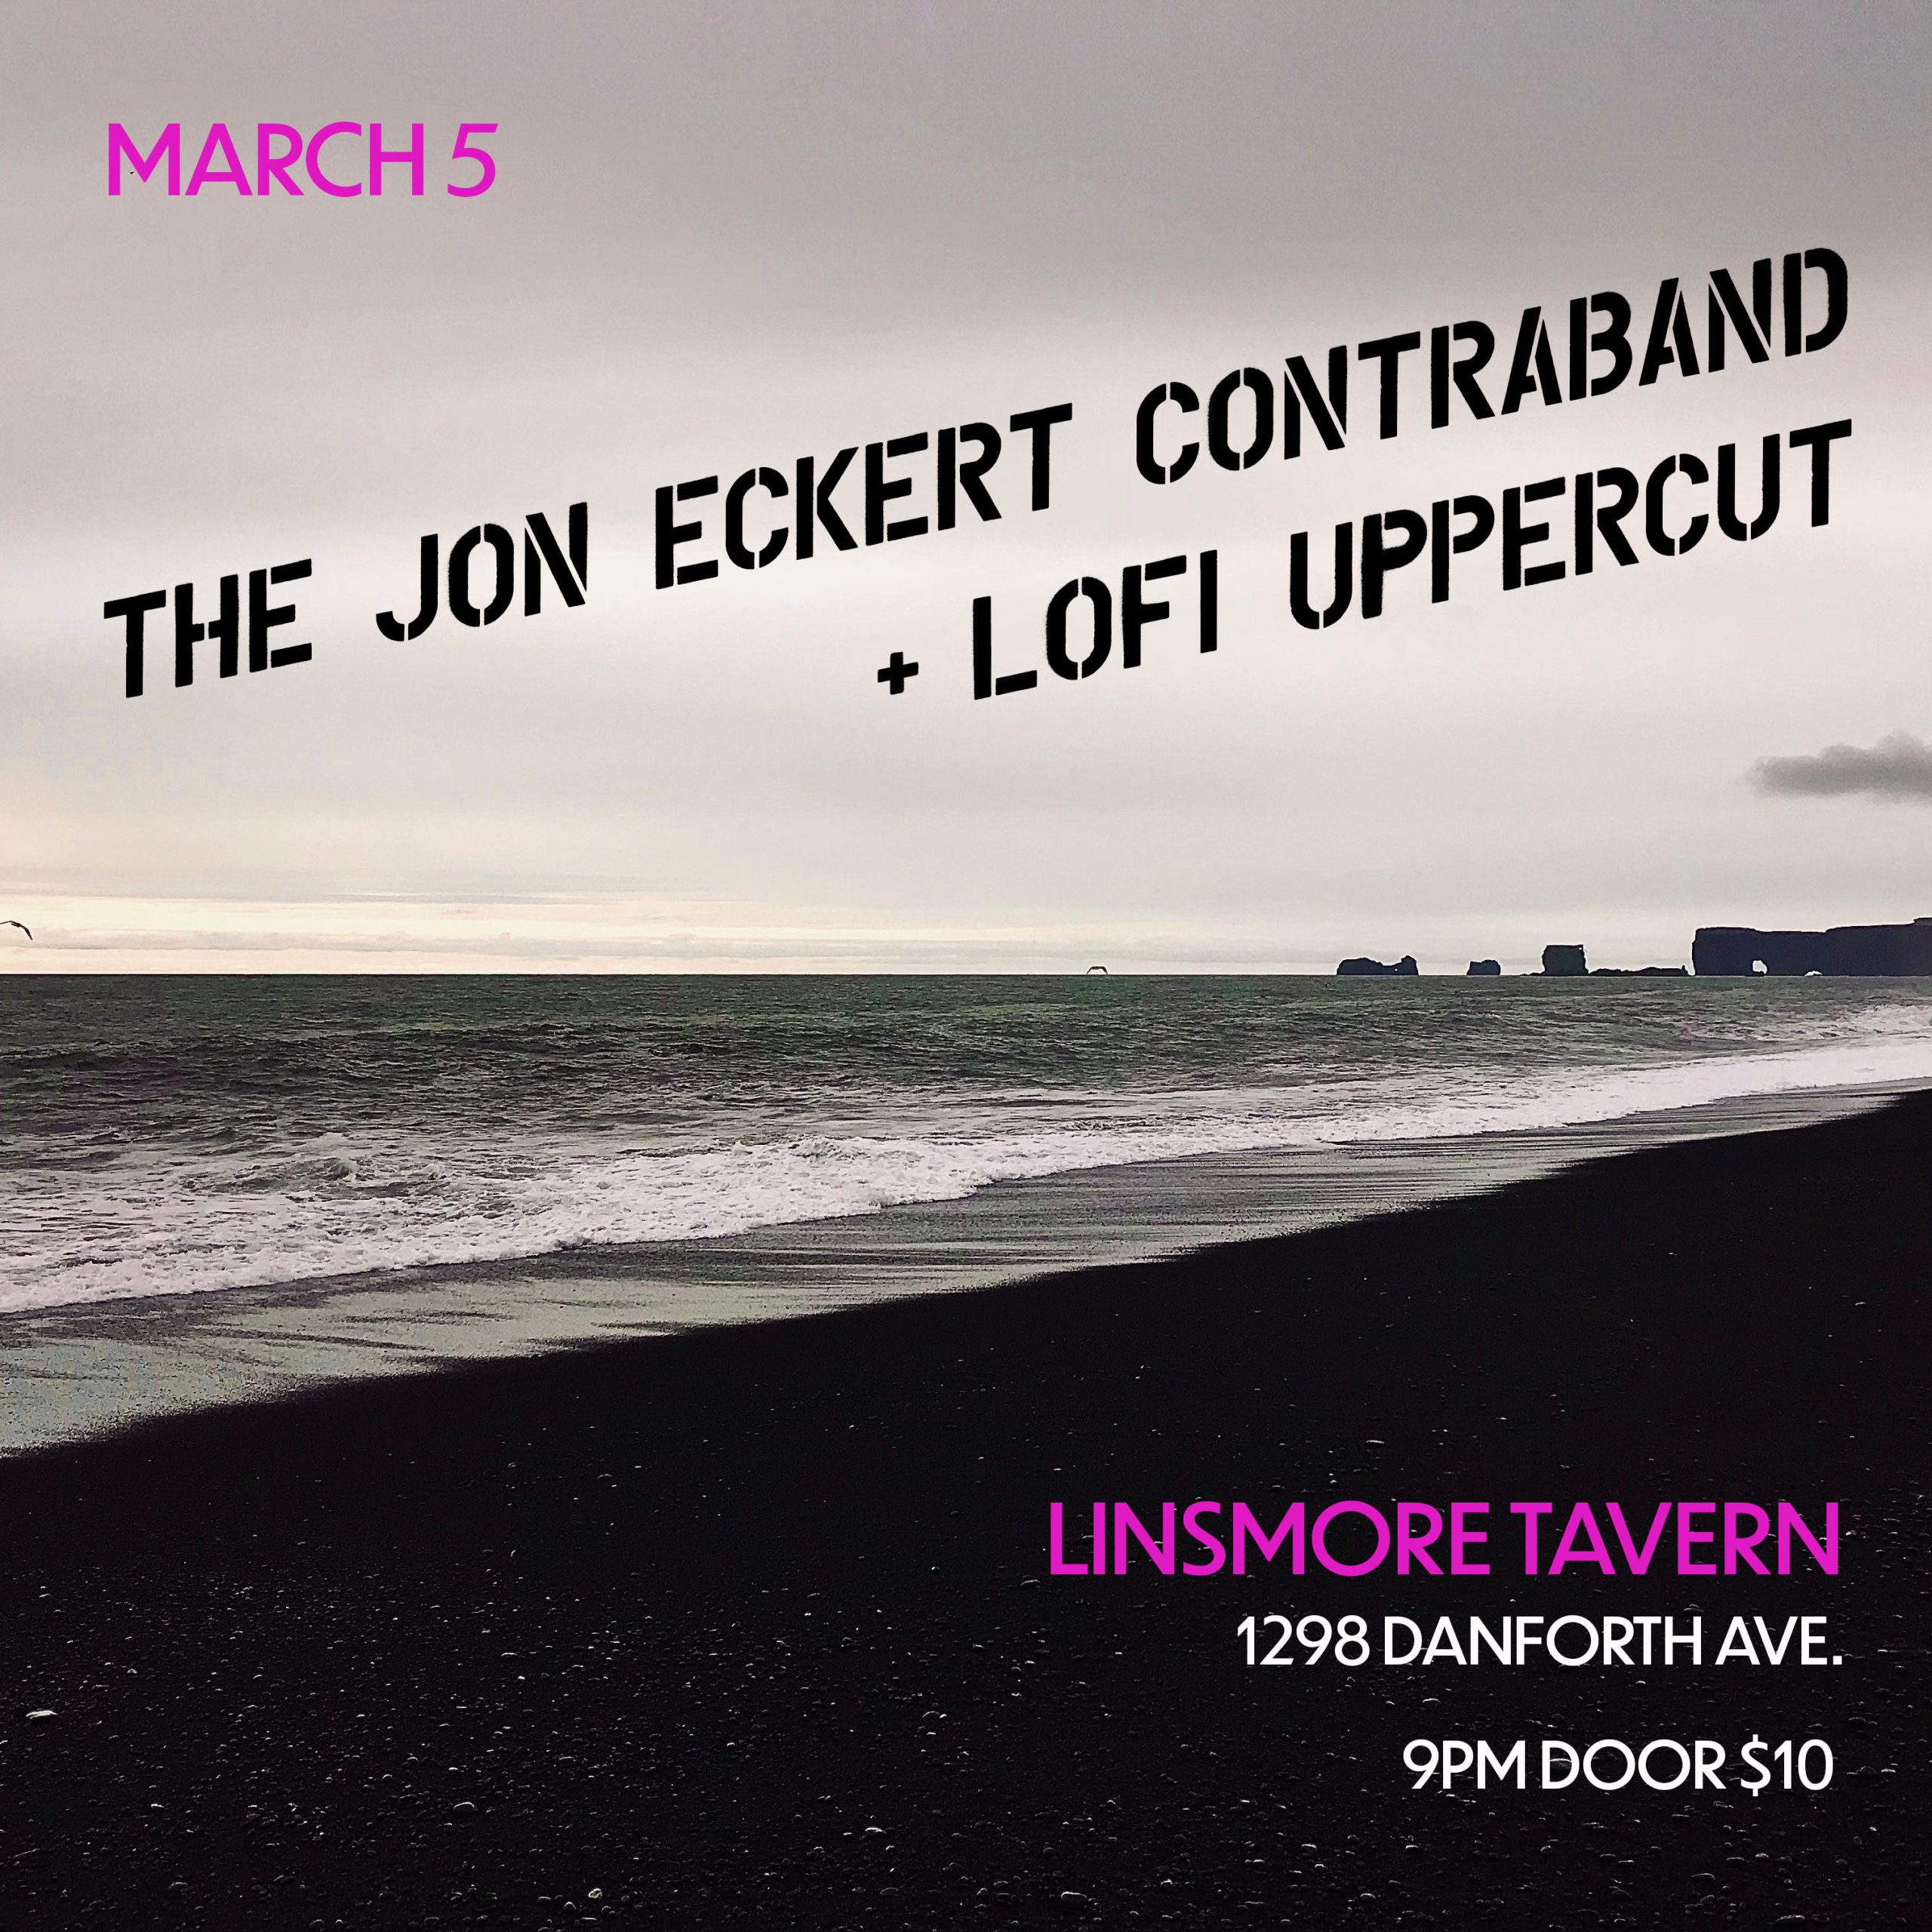 The John Eckert Contraband & Lofi Uppercut Live at the Linsmore Tavern!